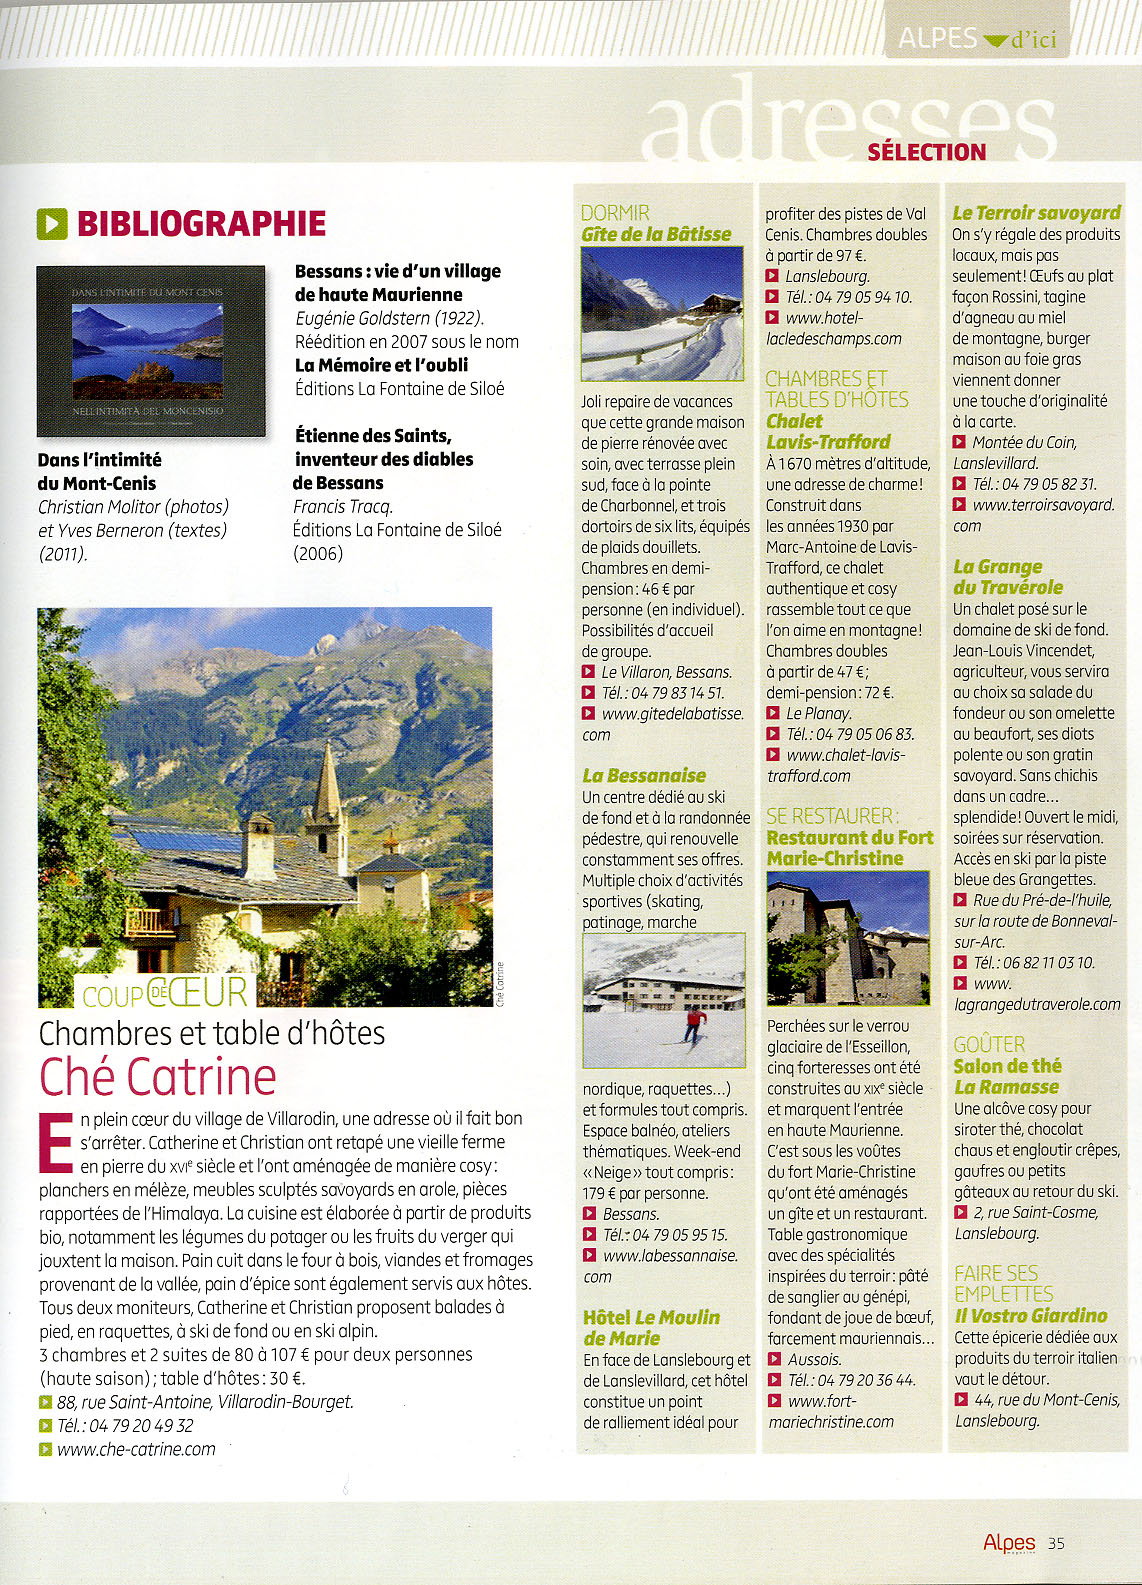 aRTICLE aLPES mAGASINE 1